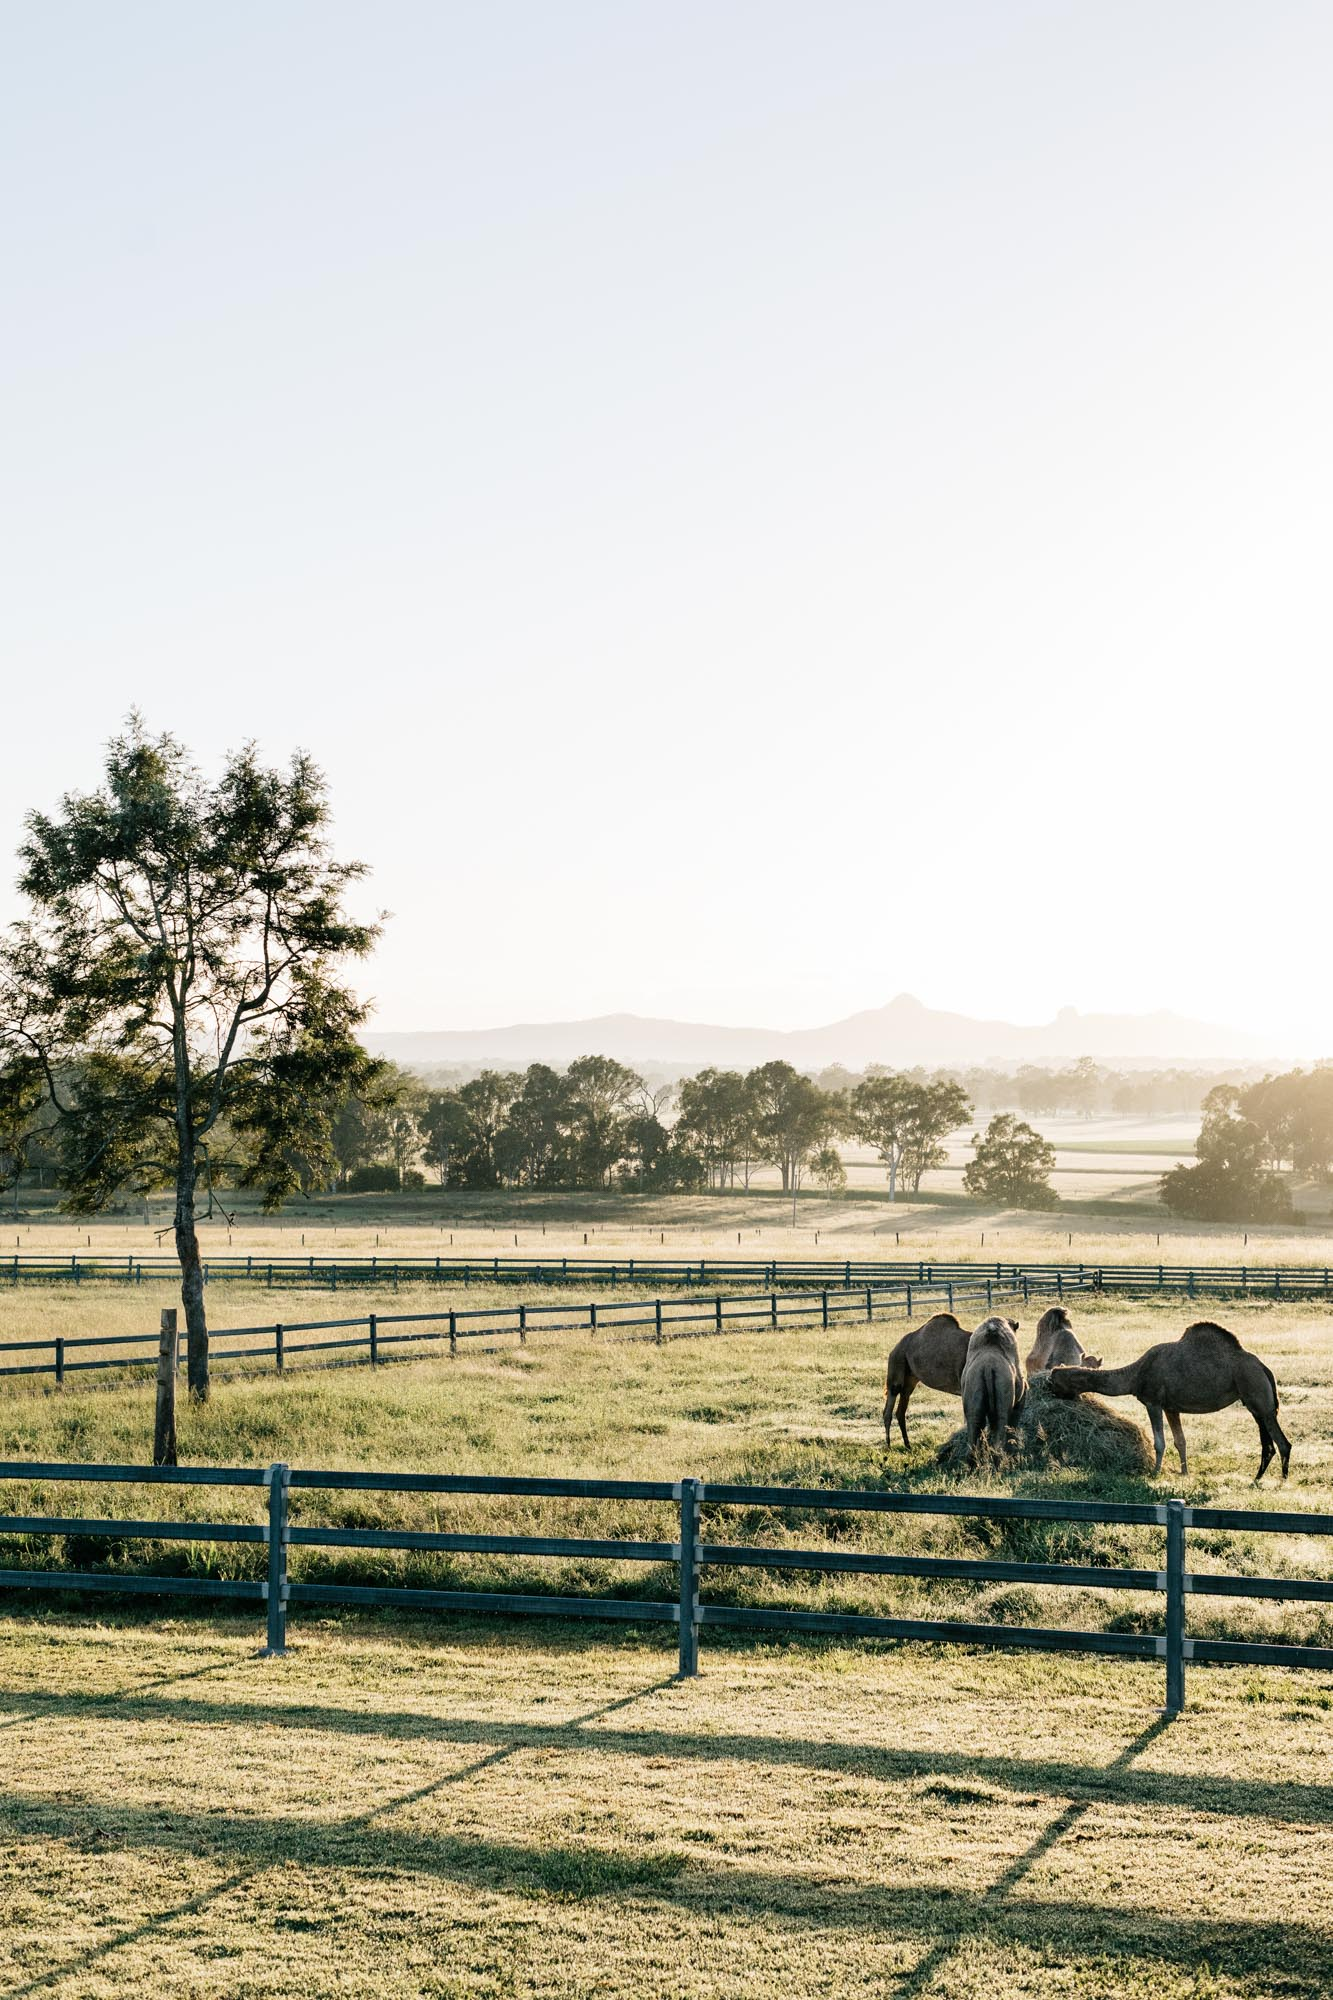 Marnie Hawson, ethical photographer for Summerland Camel Farm and Country Style magazine